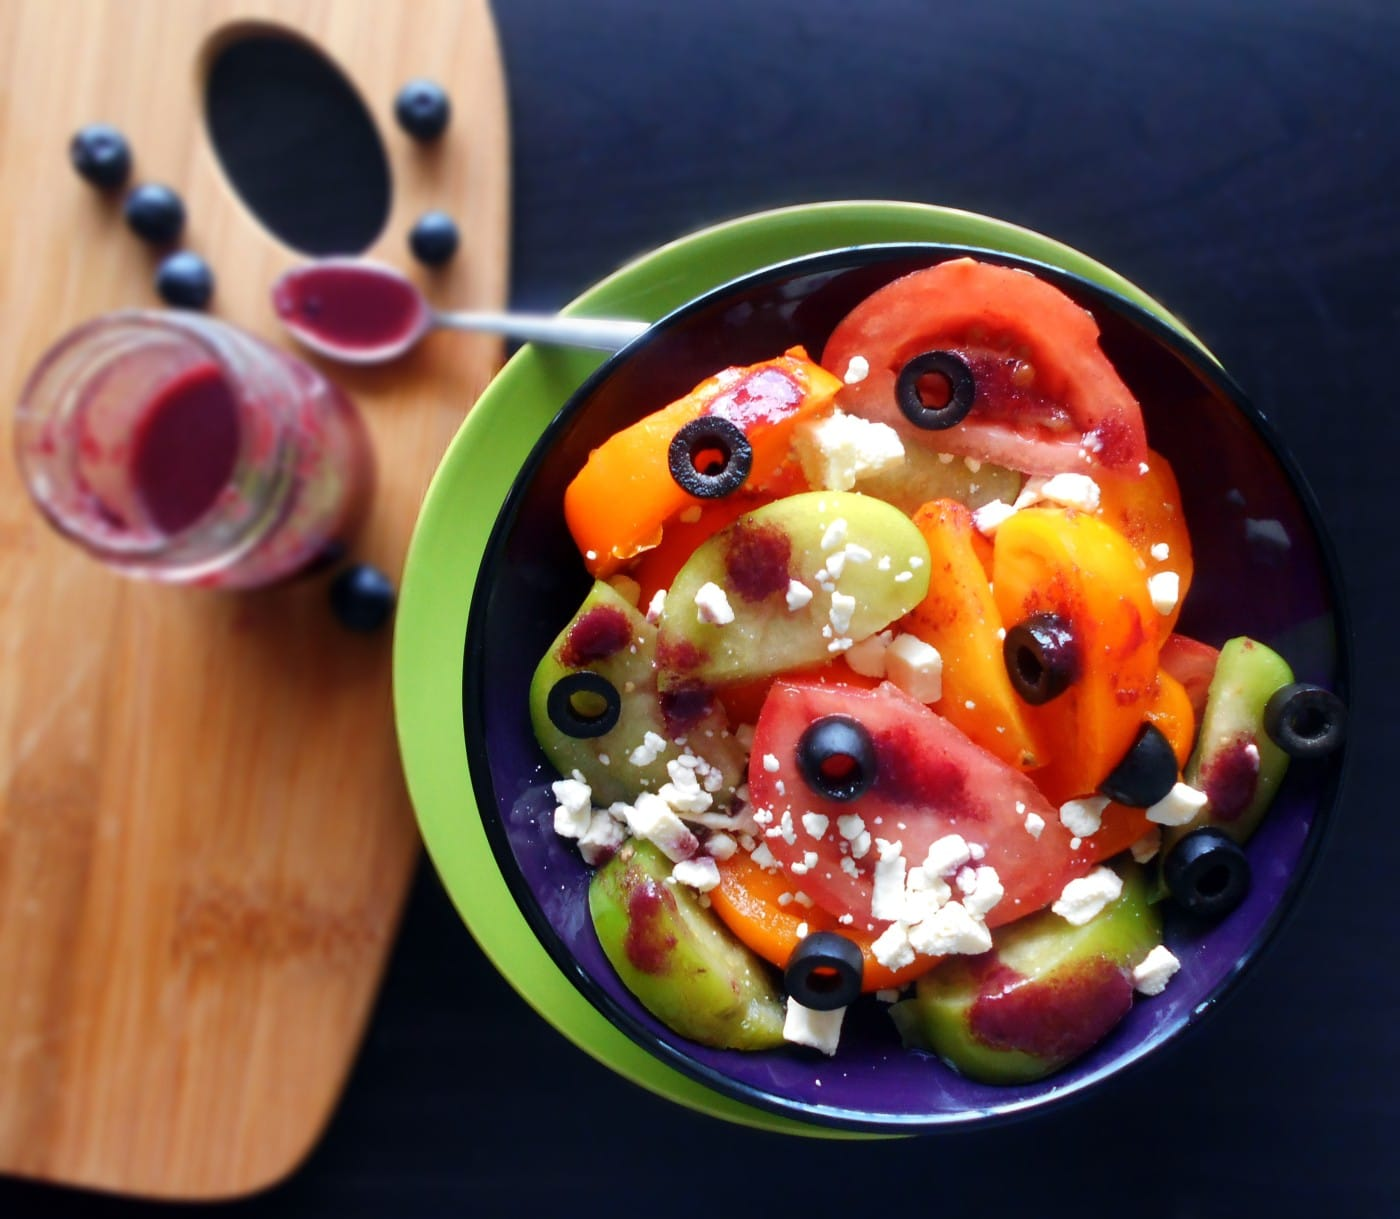 Mediterranean Tomato Salad - Usea variety of tomatoes, add olives, feta cheese and top it with a blueberry vinaigrette. Comes together in a few minutes. Quick and simple side salad